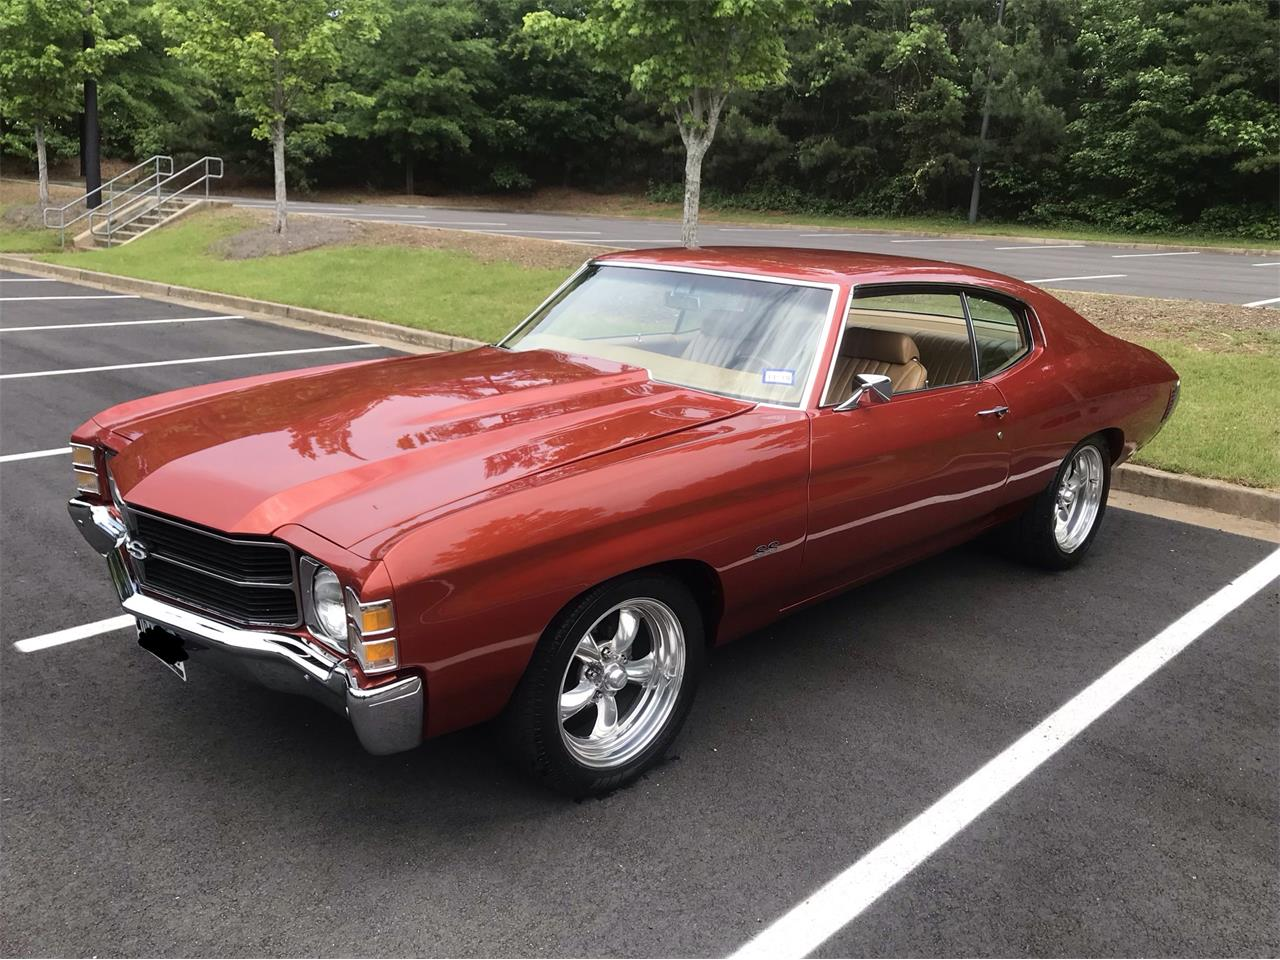 Large Picture of Classic '71 Chevrolet Chevelle SS located in Georgia Offered by a Private Seller - Q0XV